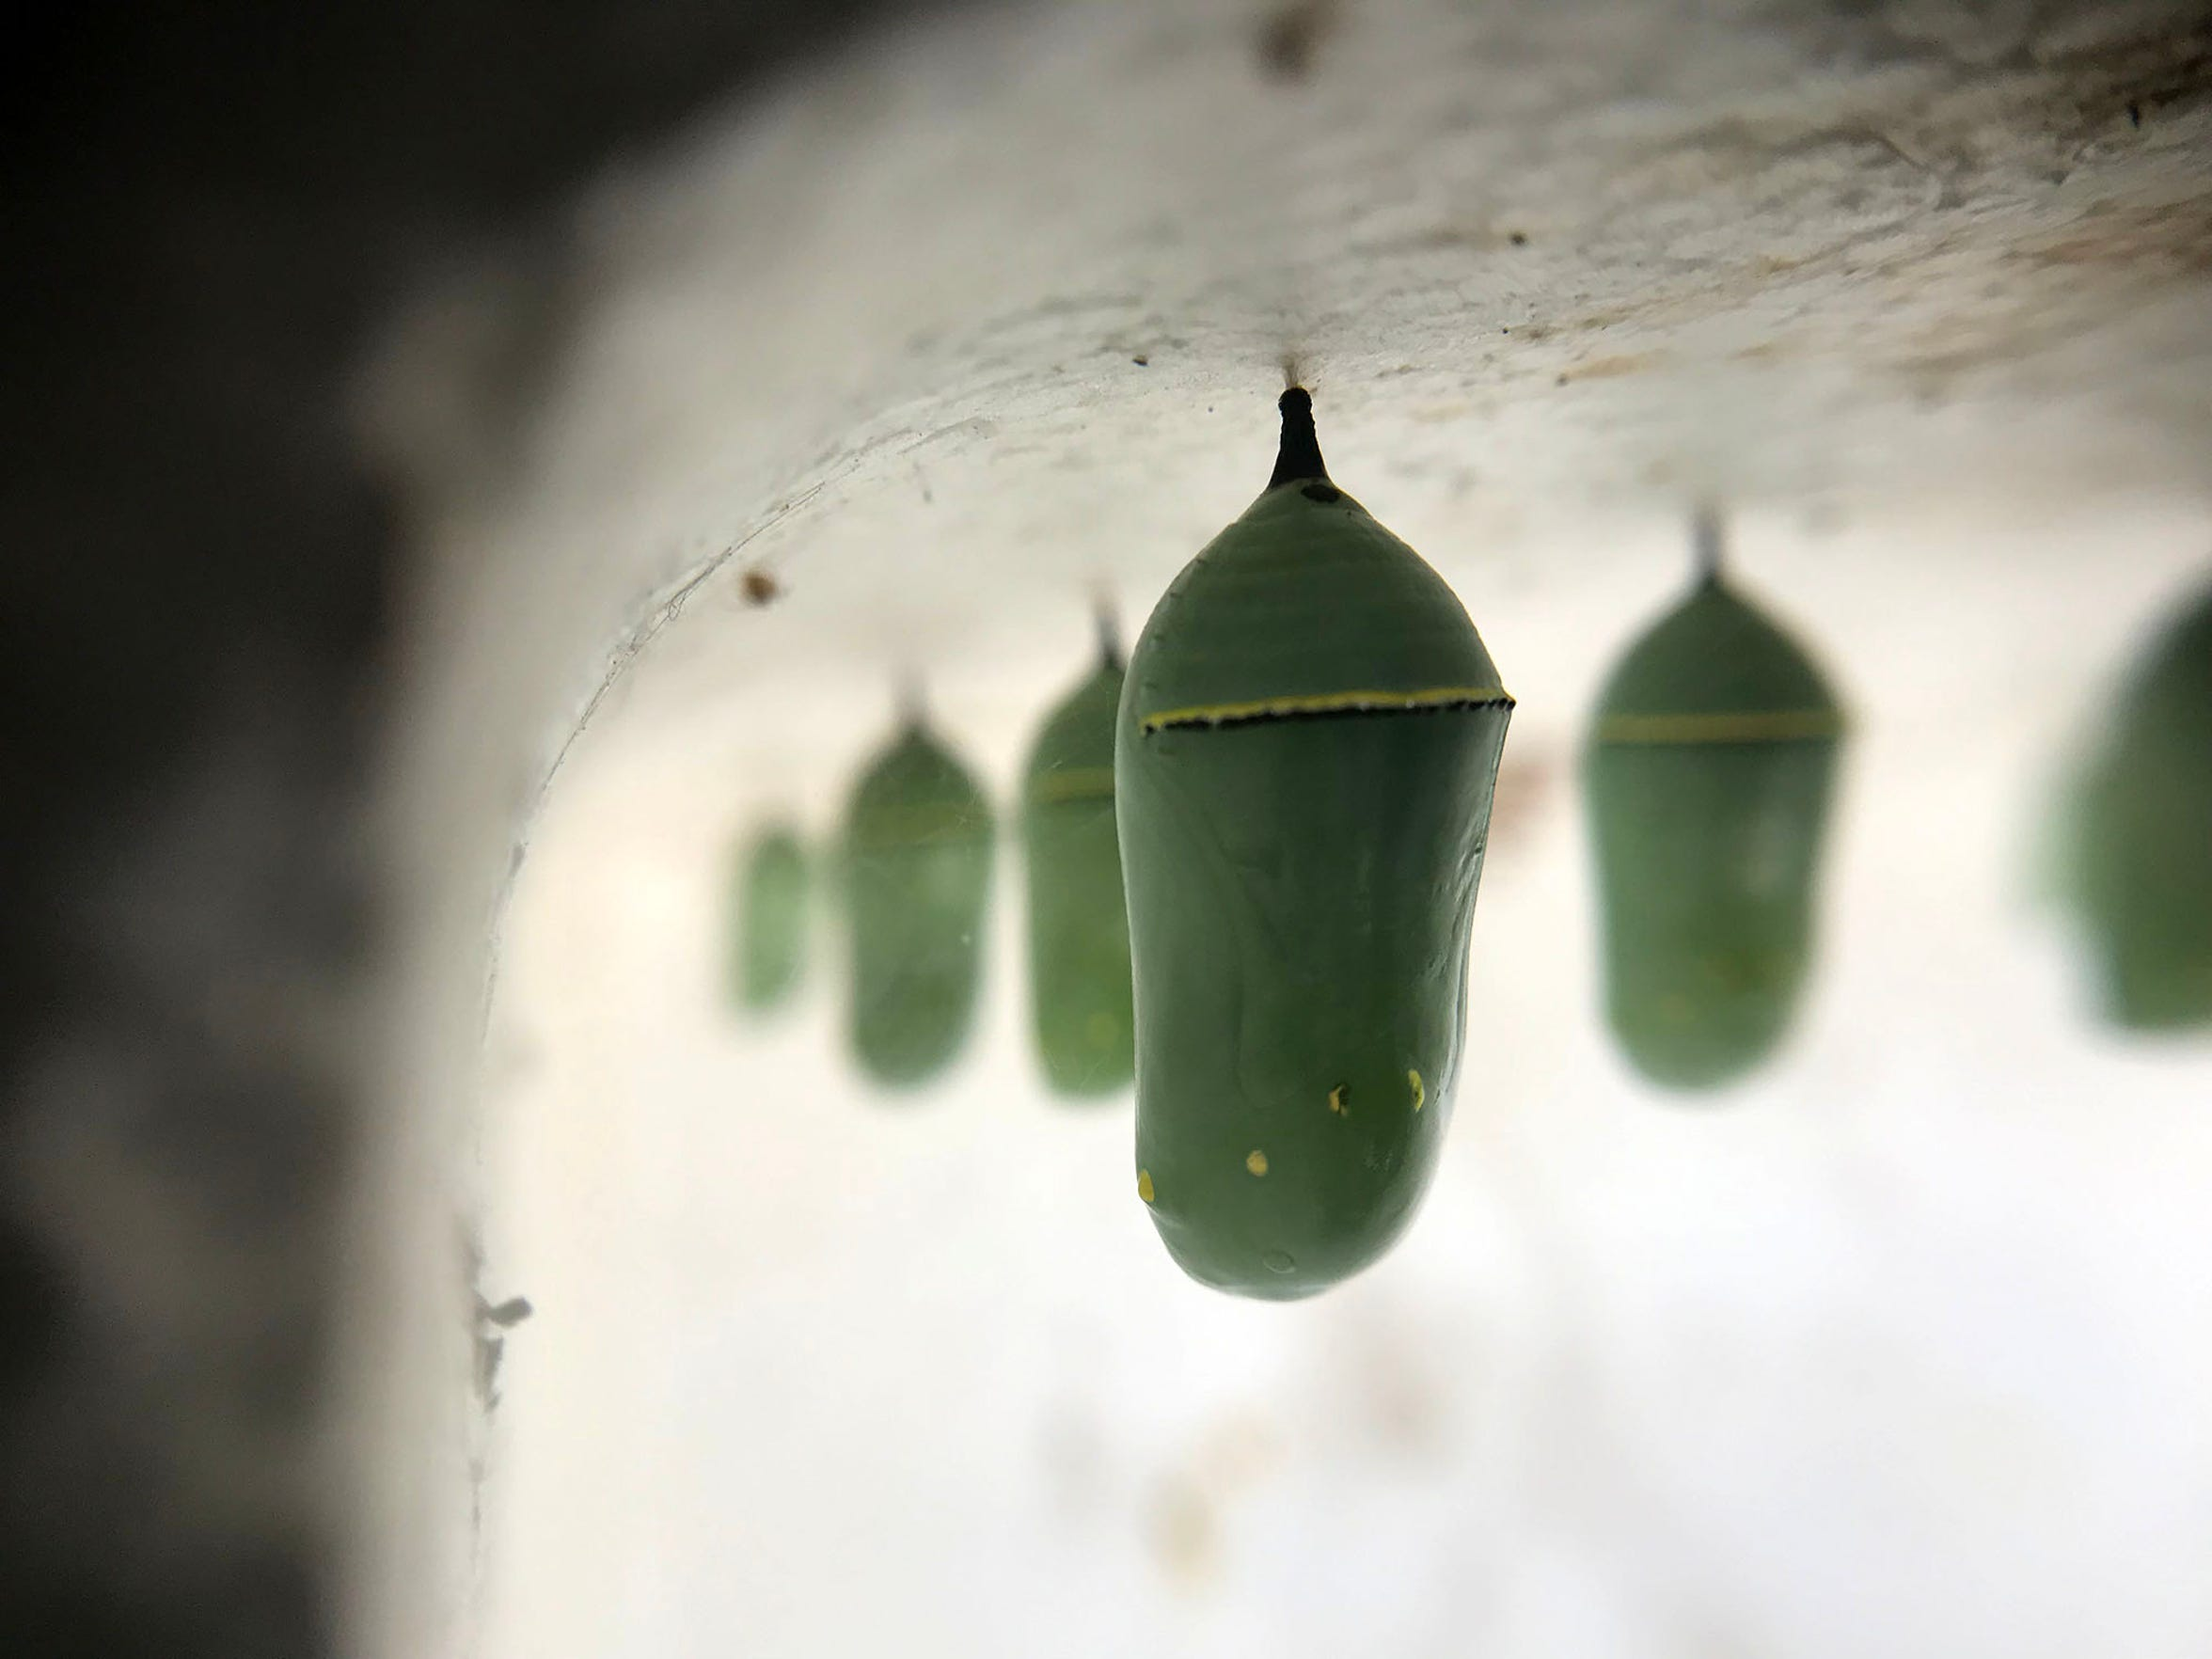 Chrysalises hang in a home before they emerge as caterpillars. Vonnie Black has raised and released monarch butterflies in her Chambersburg area garage for 20 years.